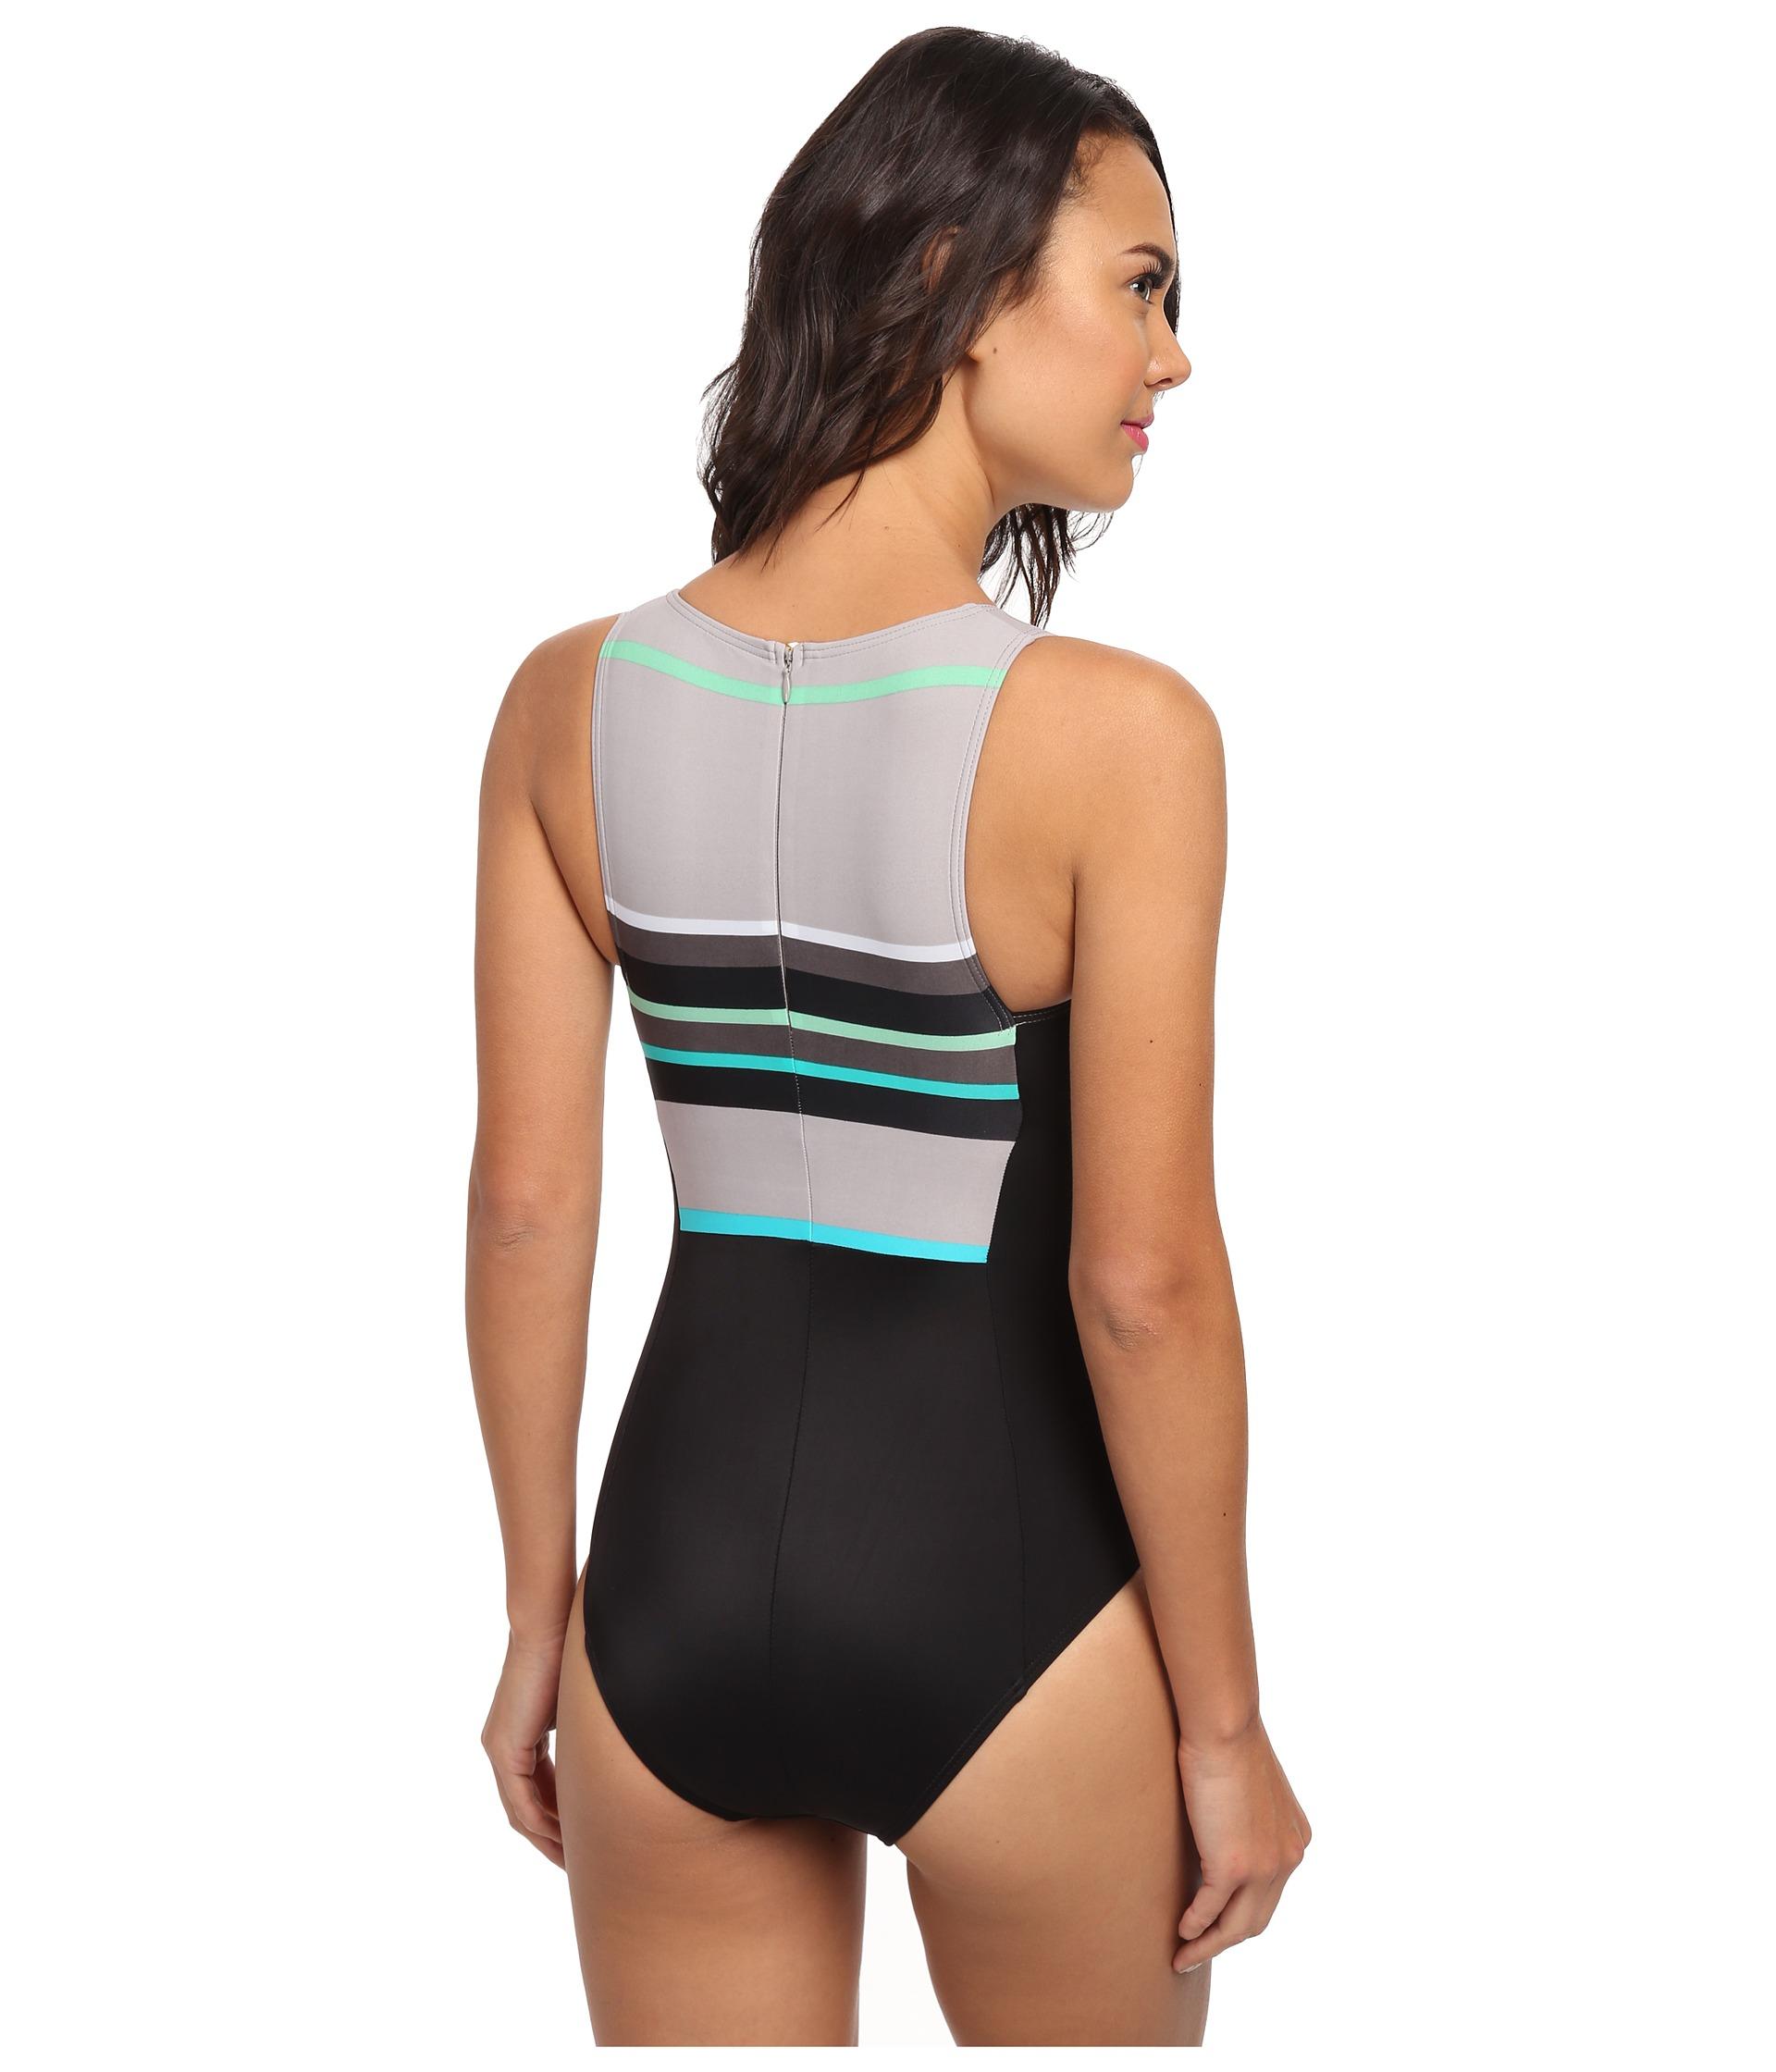 48ed20eda442b DKNY Slip Stripes High Neck Maillot One-piece in Black - Lyst